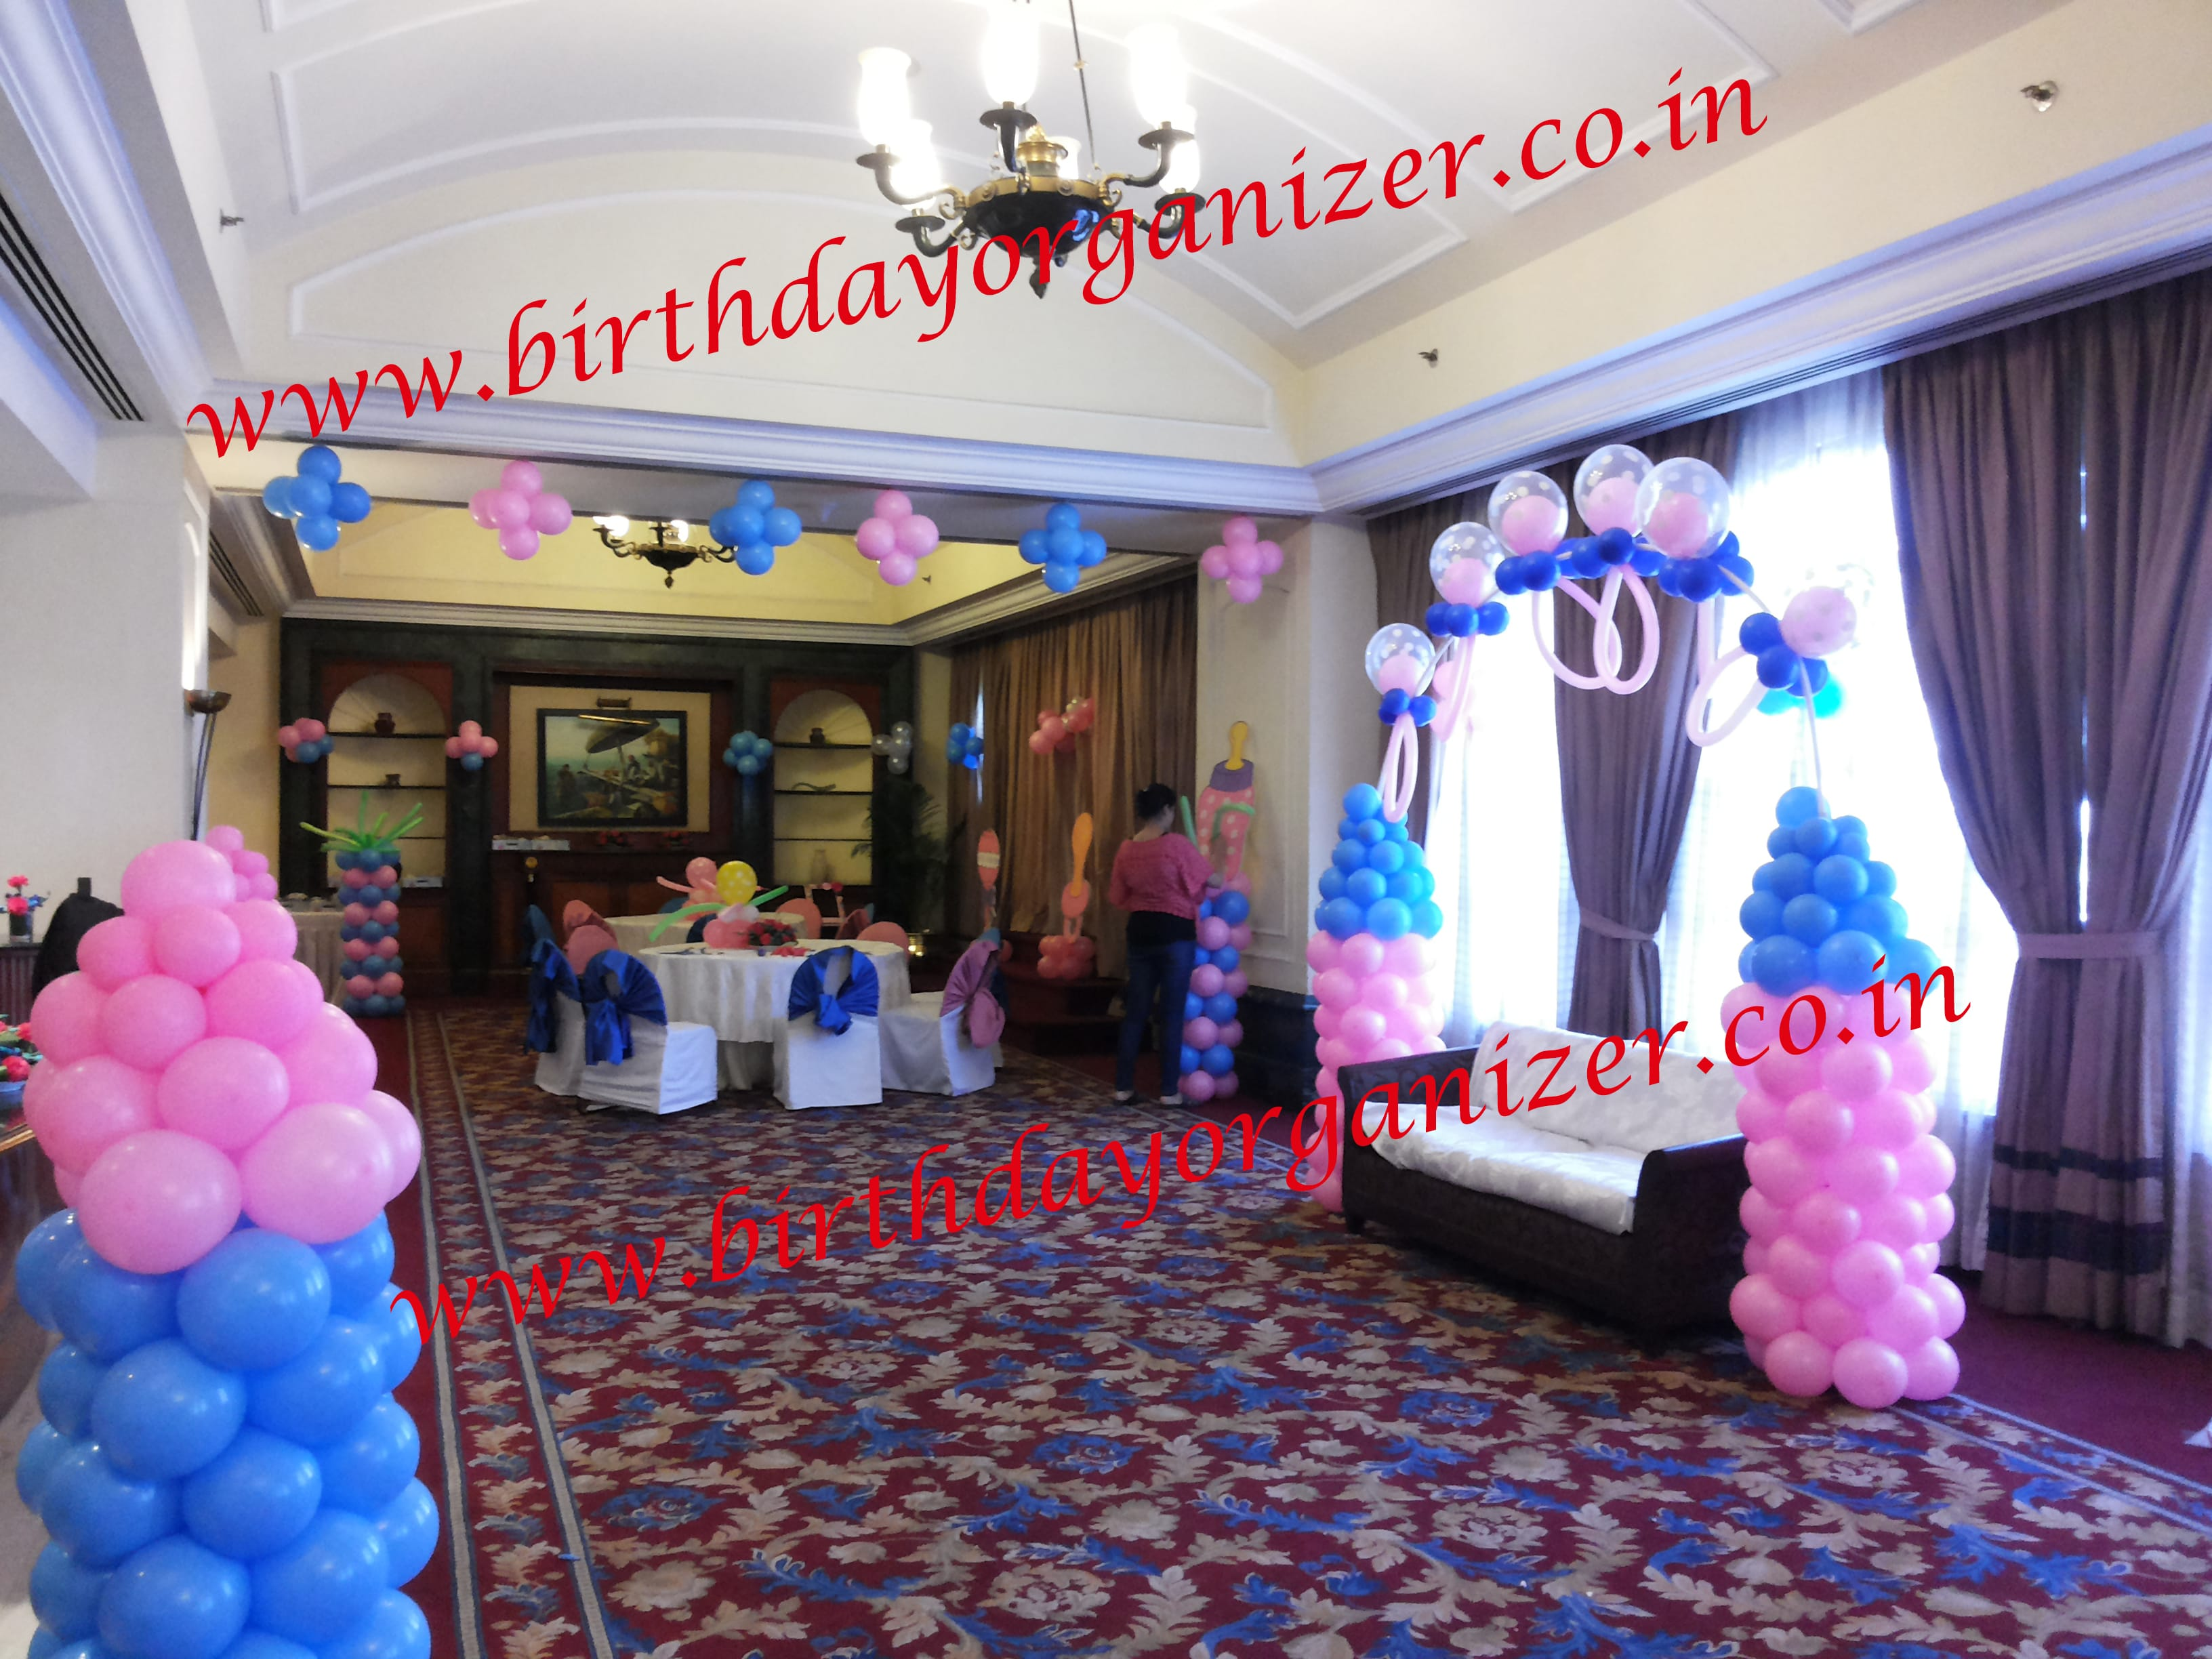 Baby shower balloon decoration in delhi , Baby shower balloon decoration in noida, Baby shower balloon decoration in ncr, Baby shower balloon decoration in gurgaon